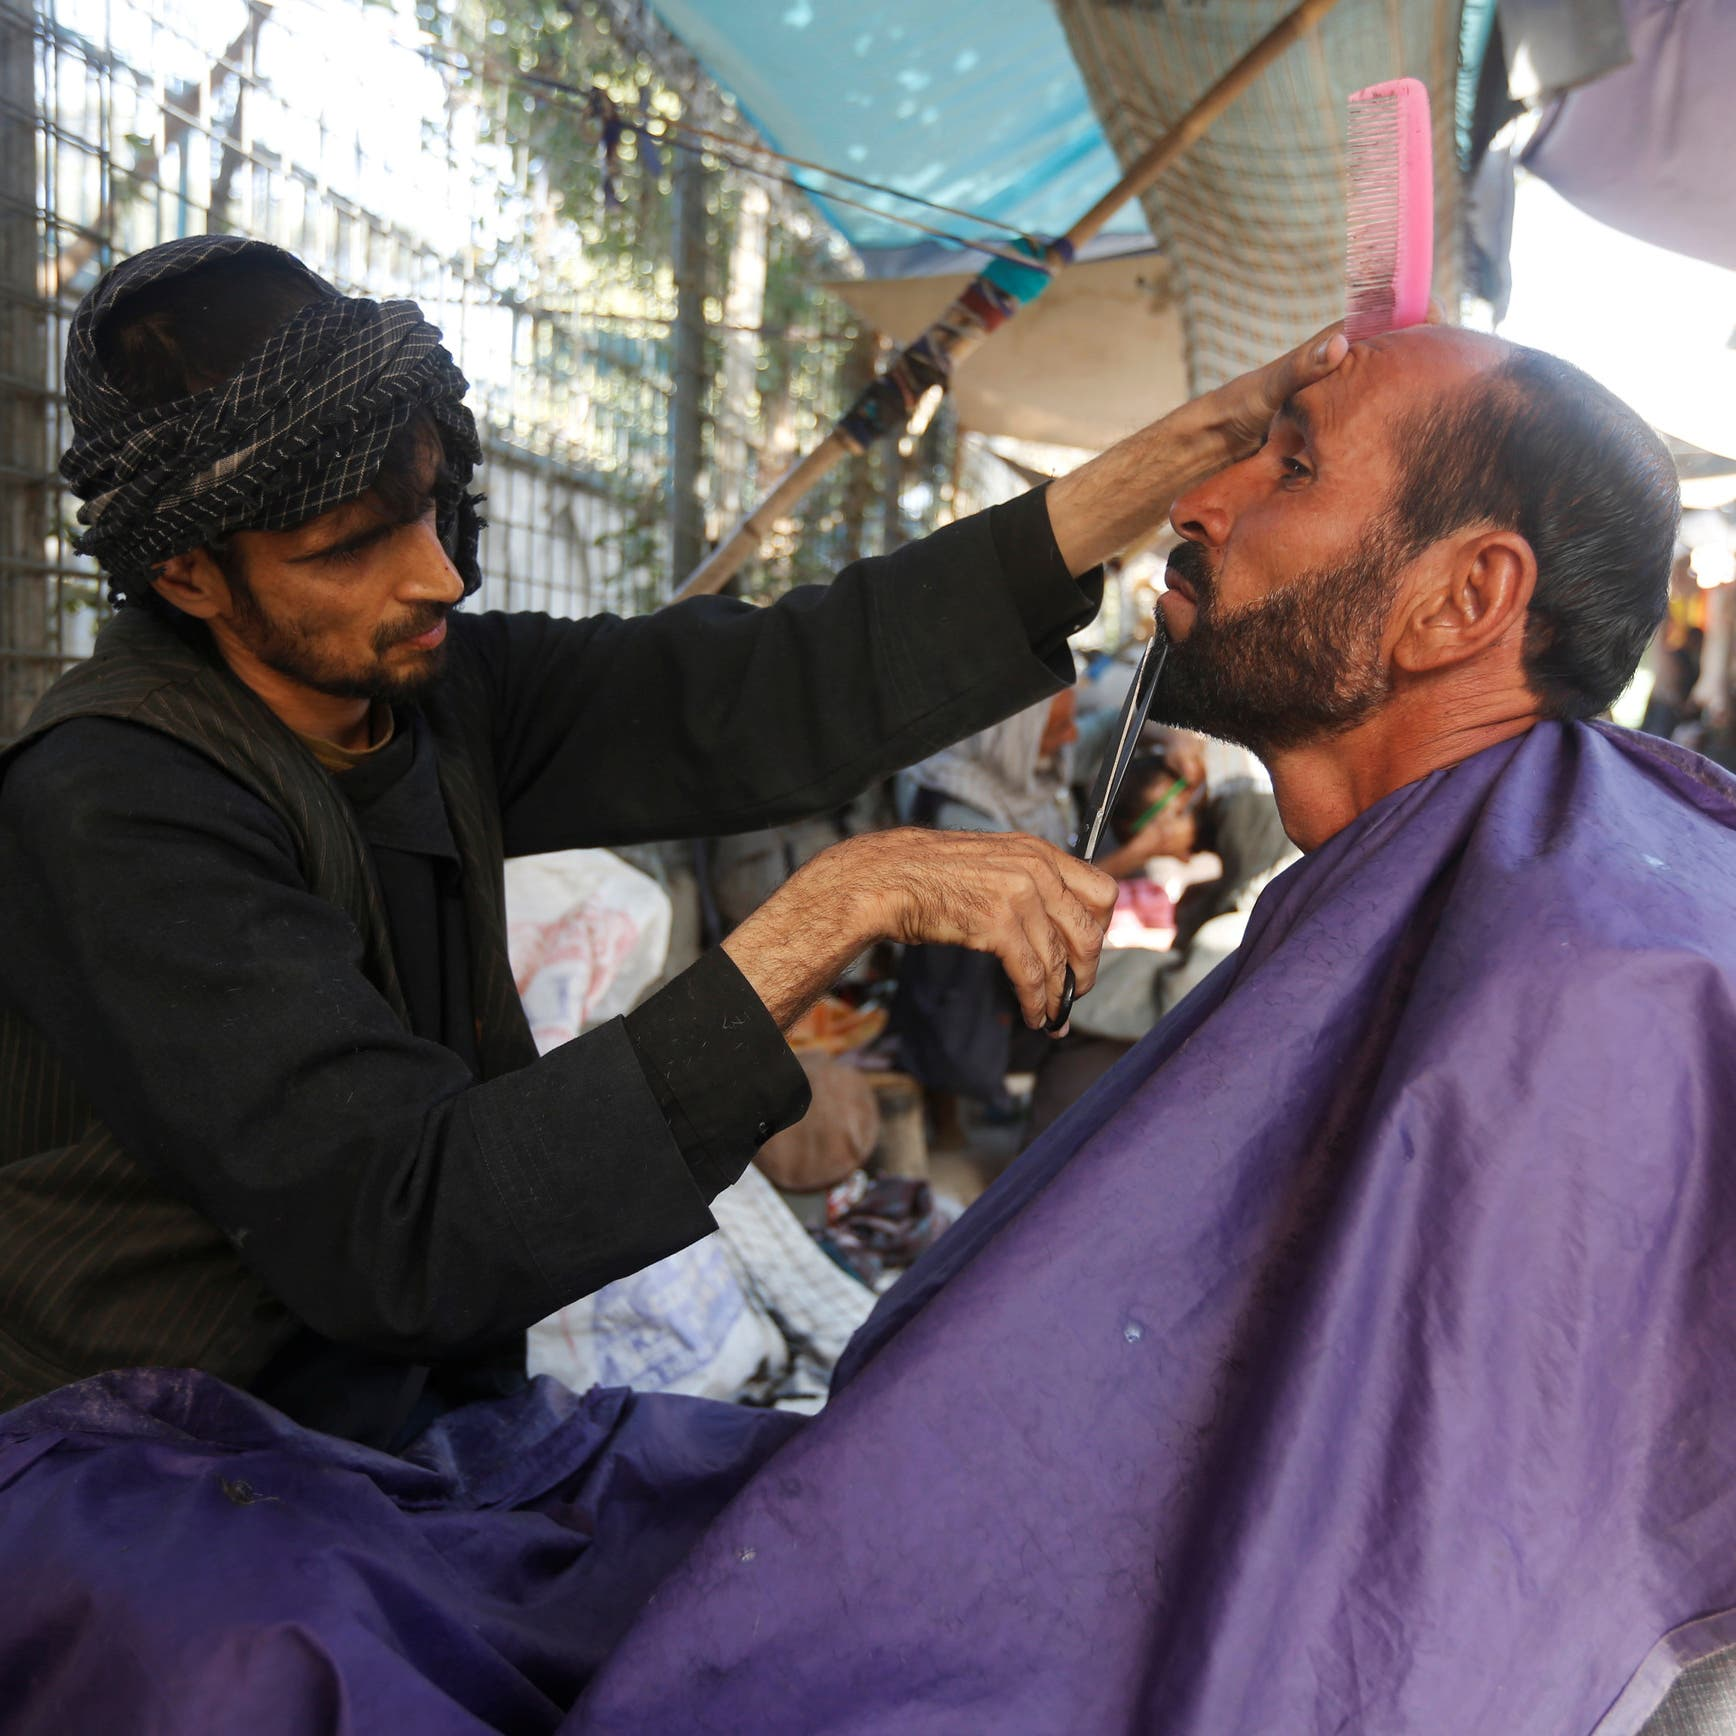 Forbidden business: Taliban prohibit barbers from shaving, trimming beards